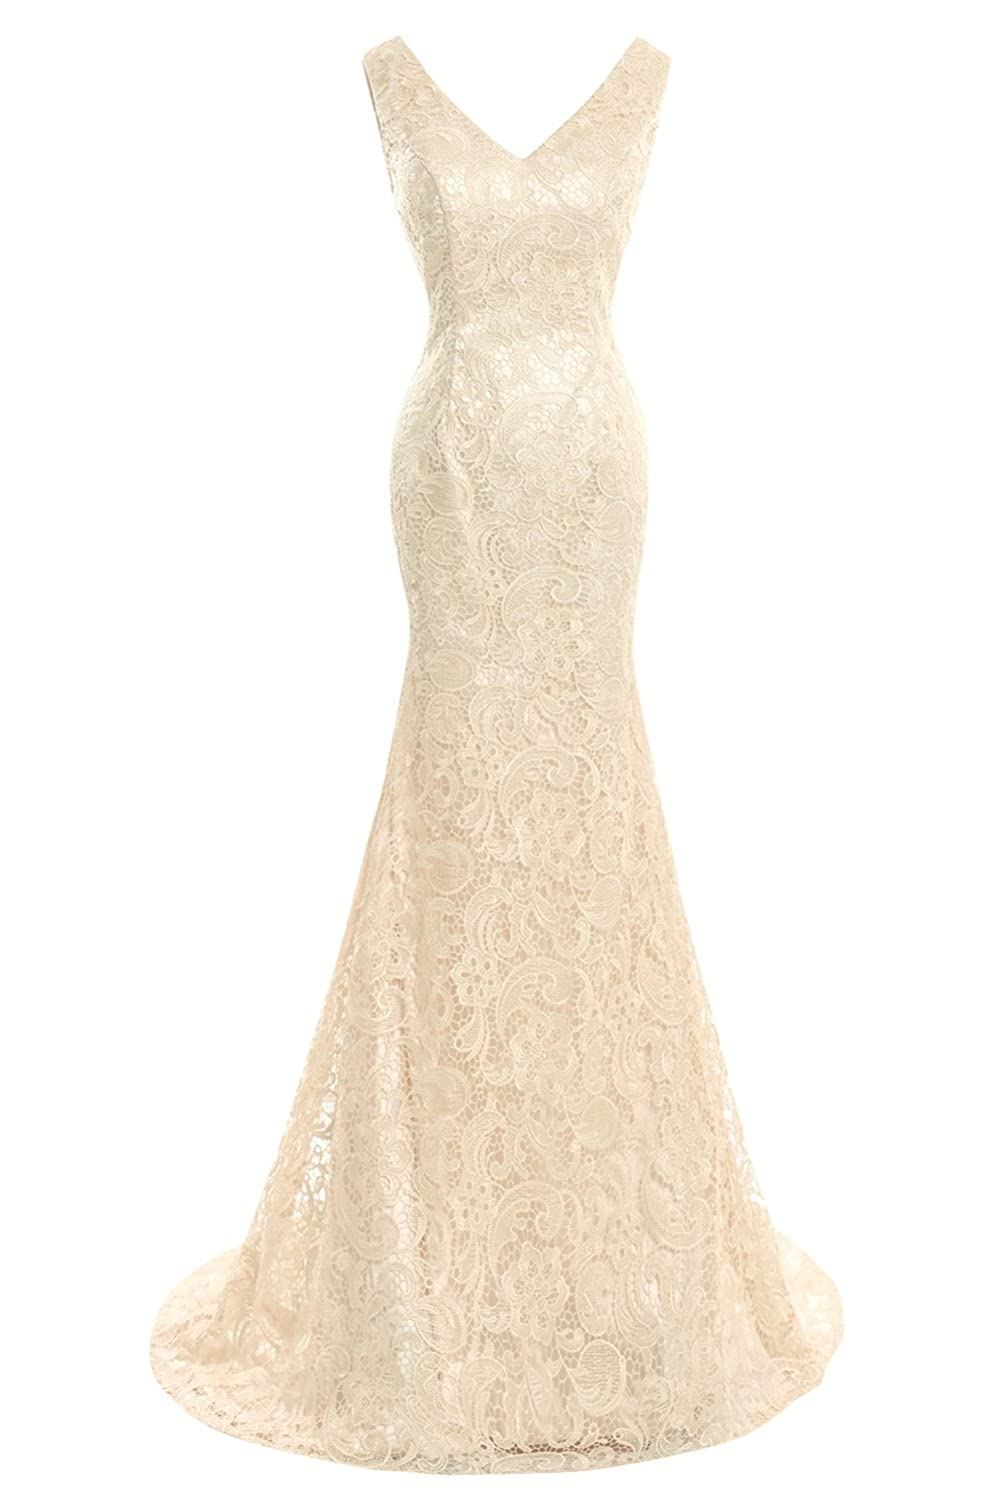 Champagne Bess Bridal Women's Double V Neck Lace Mermaid Formal Prom Evening Dresses